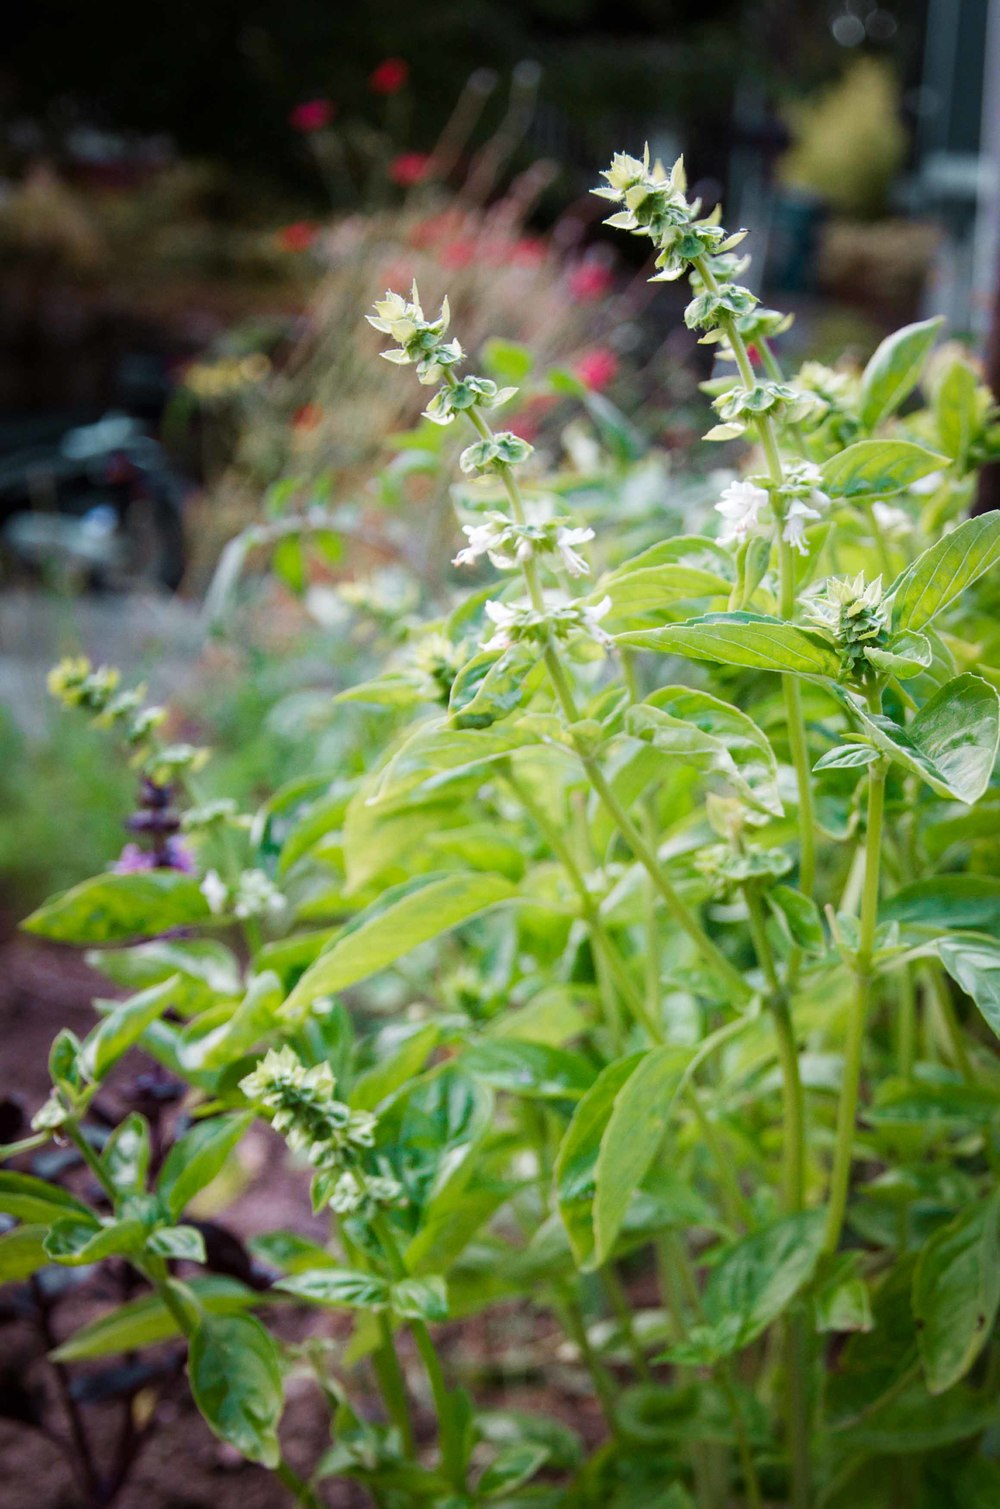 Flowering signals the end of the basil plants lifecycle.